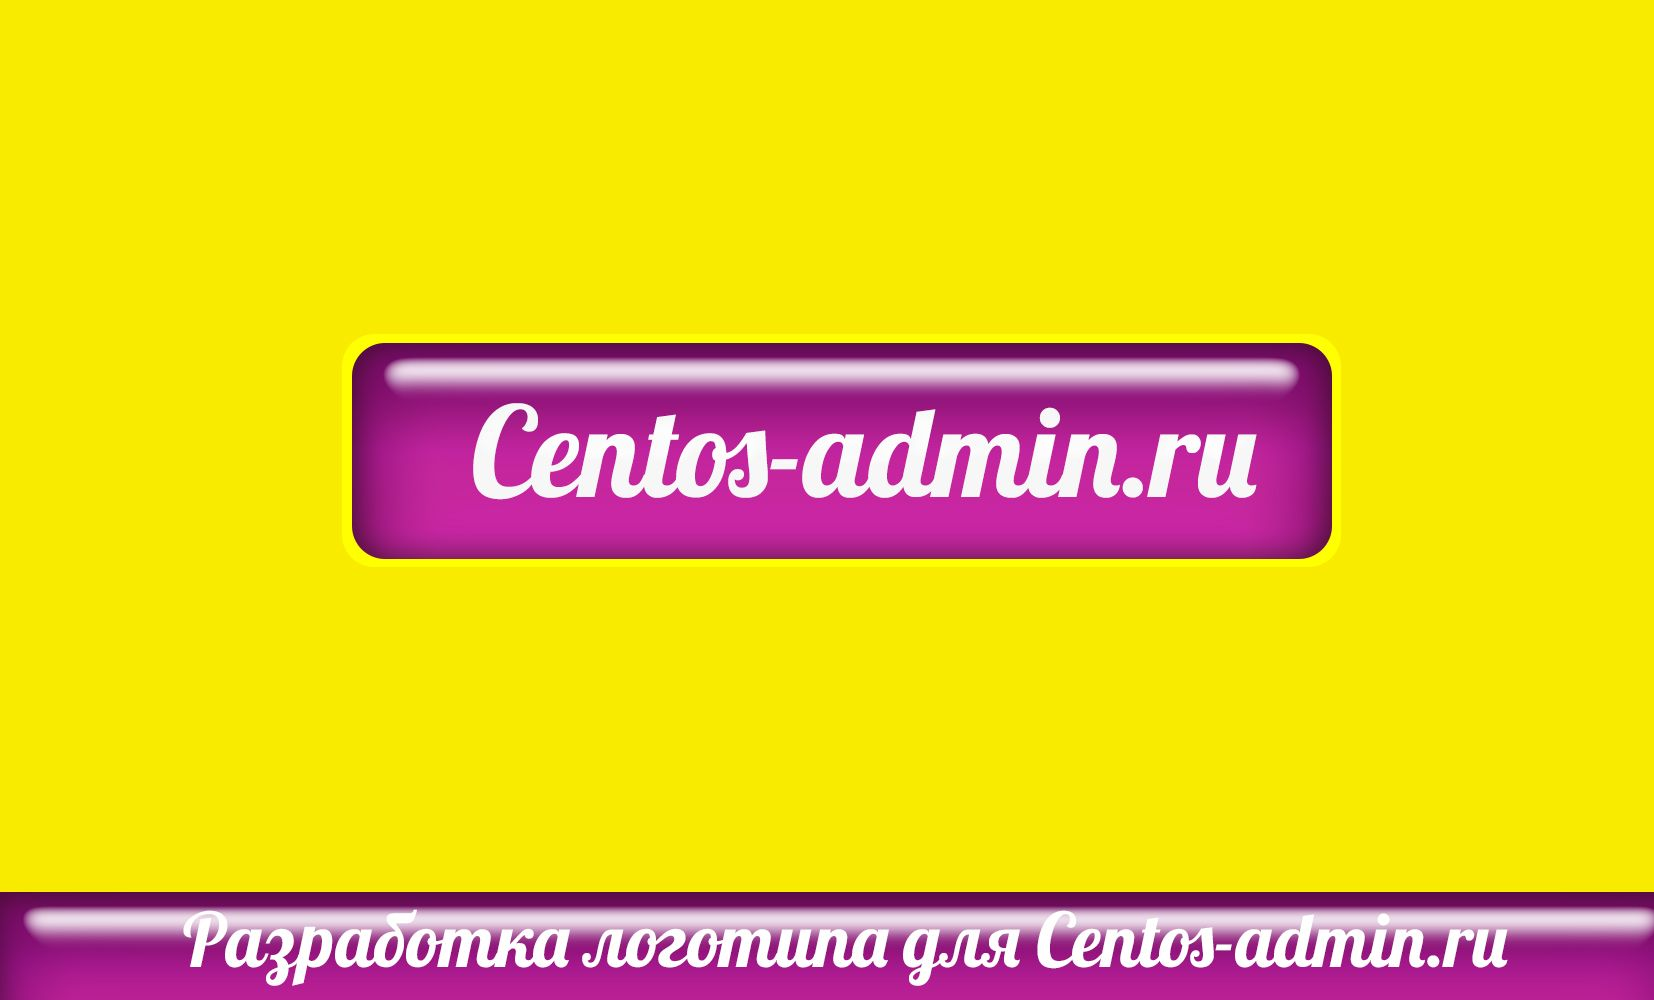 Логотип для компании Centos-admin.ru - дизайнер optimuzzy